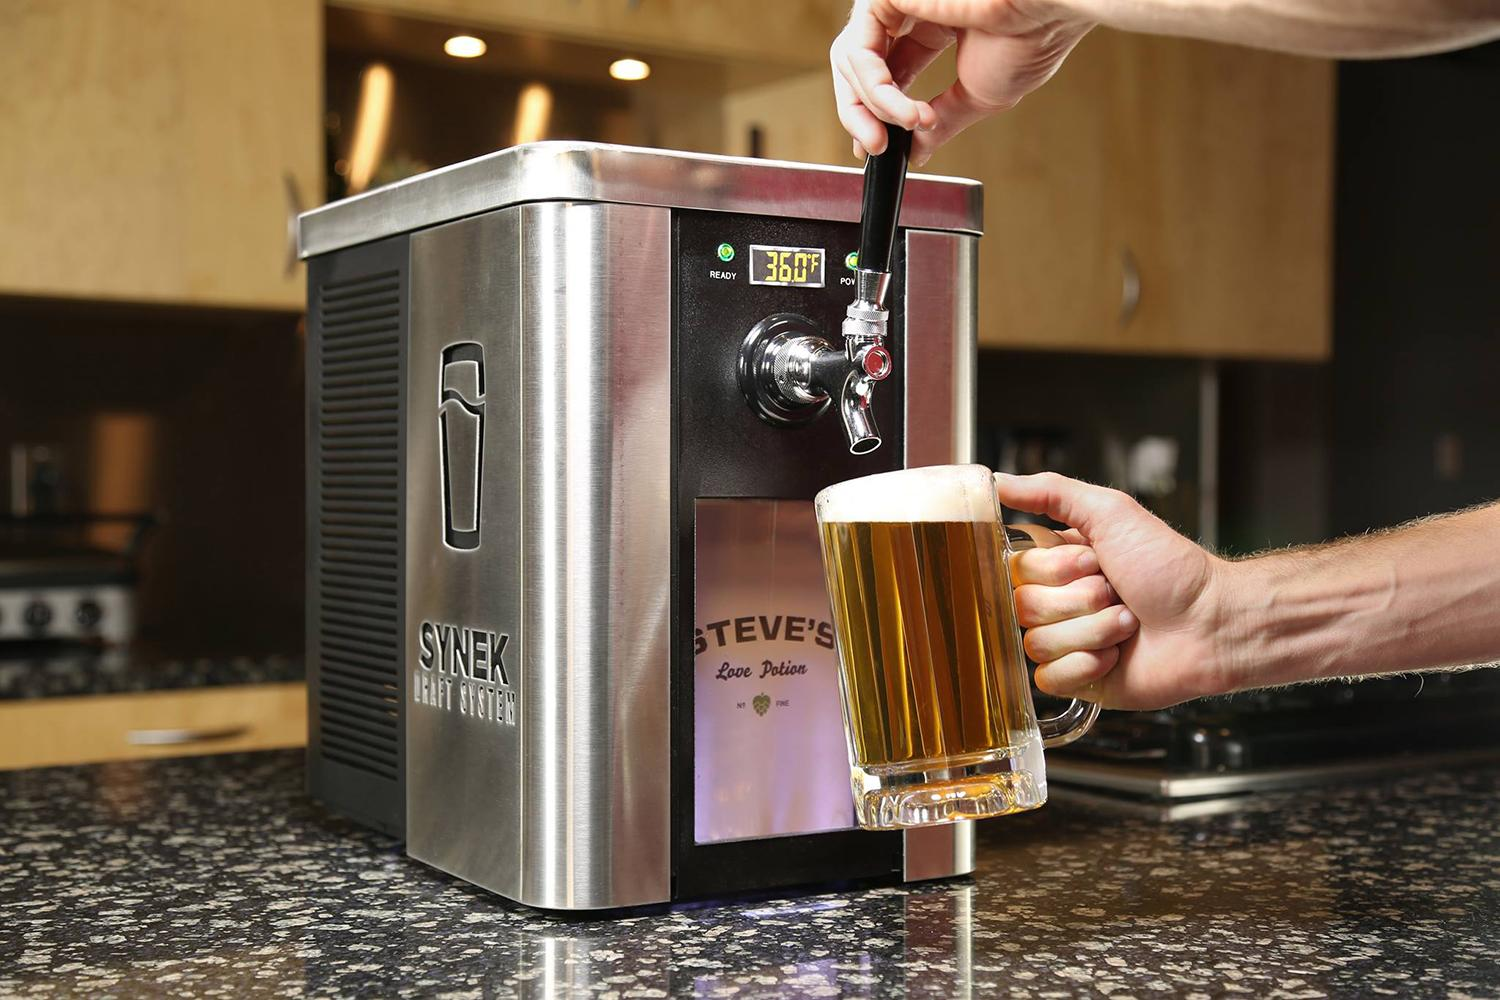 Countertop Beer Cooler And Tap The Synek Craft Brew Dispenser Is Like A Keurig For Beer